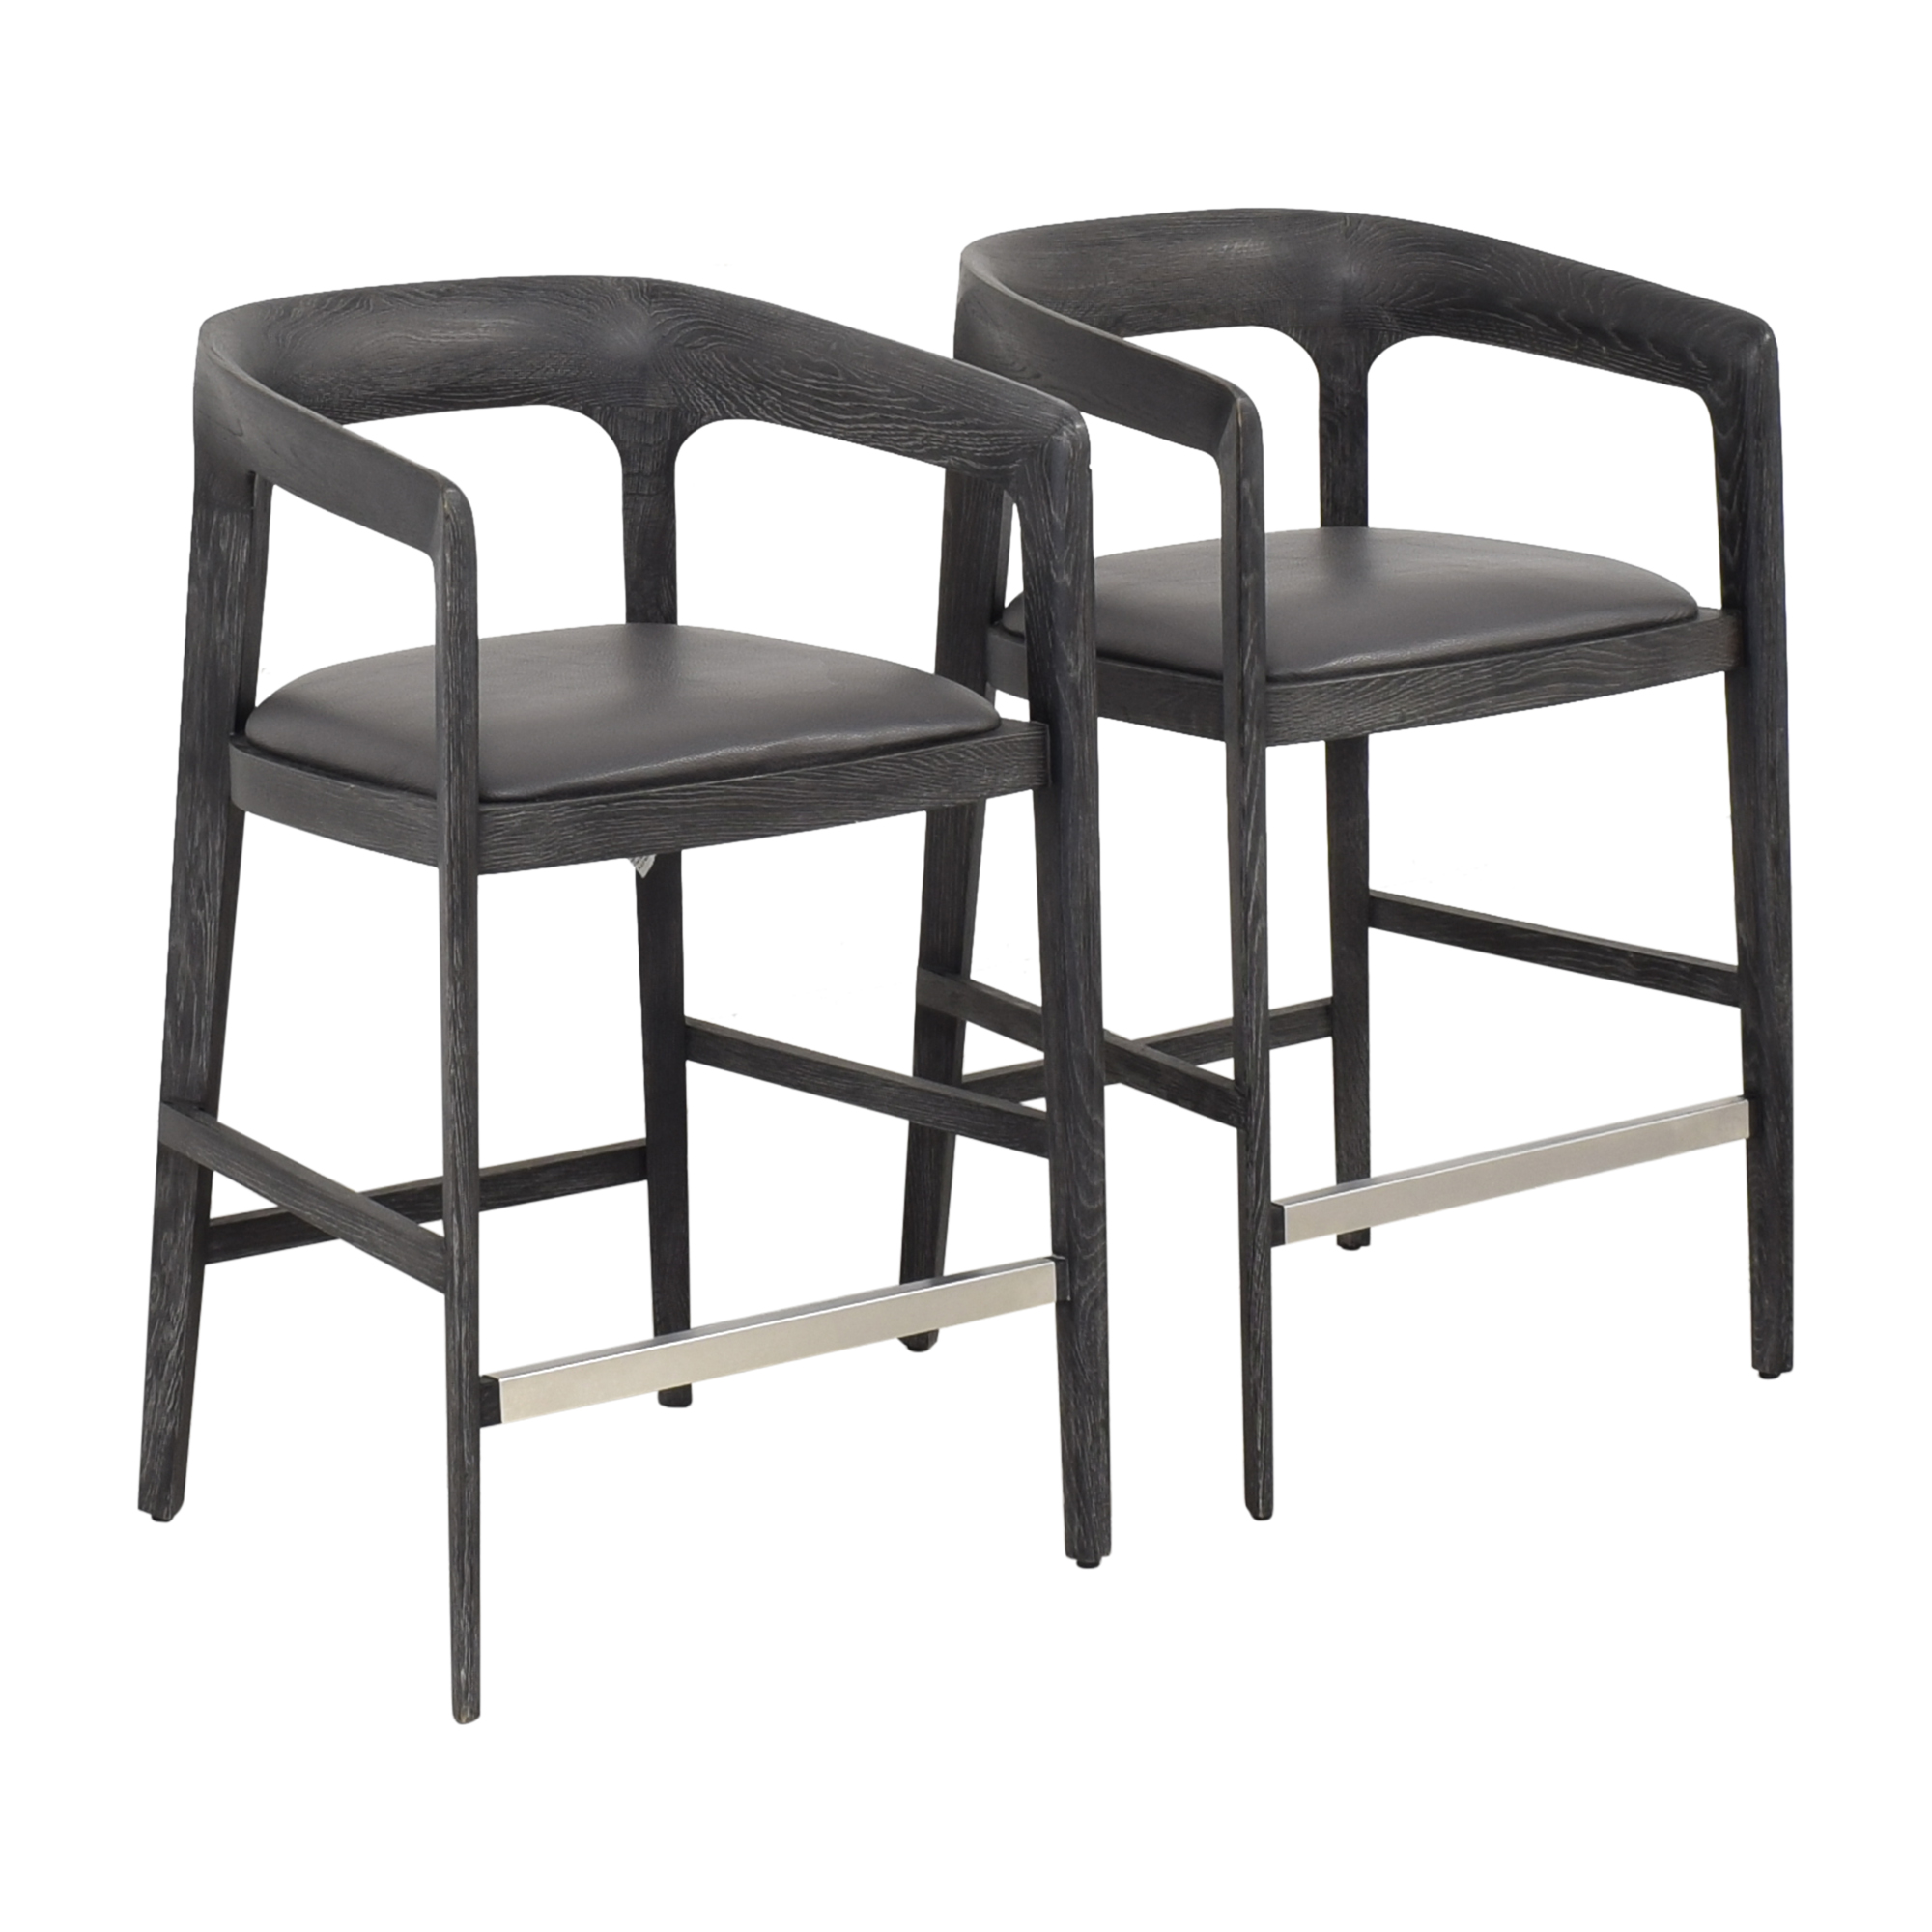 buy Interlude Home Kendra Counter Stools Interlude Home Stools